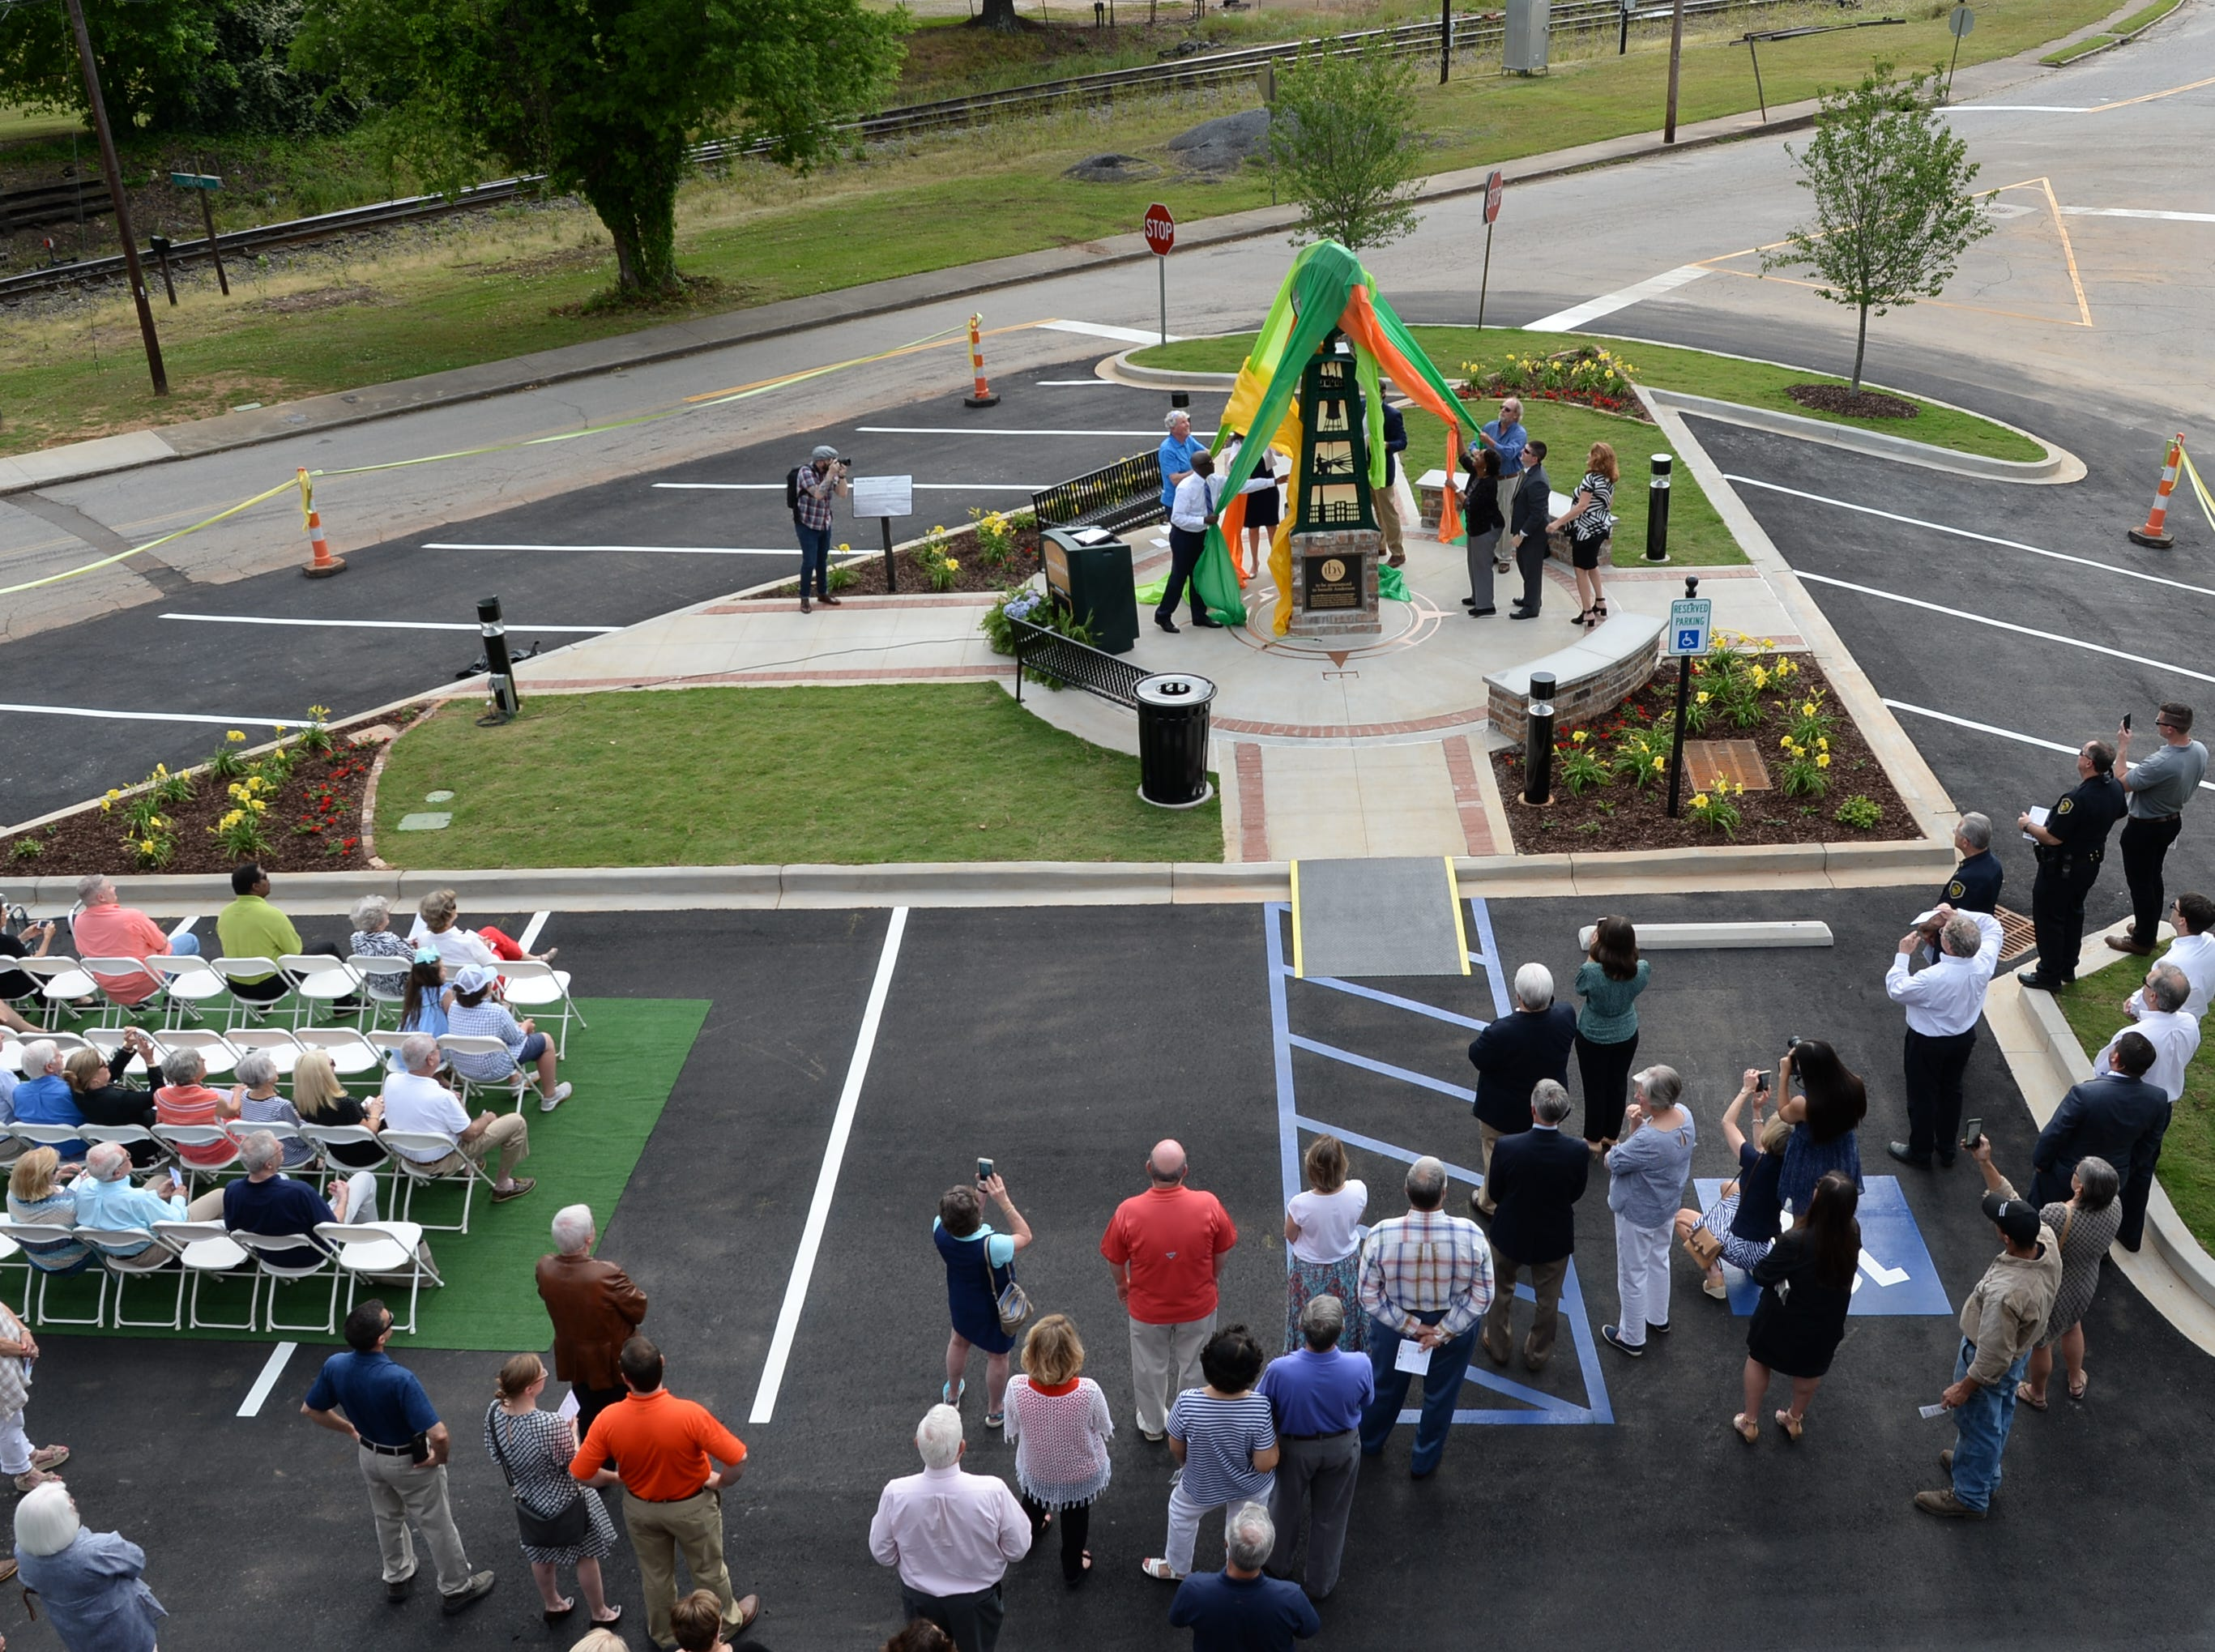 Anderson officials help unveil the Under the bridge project called Textile Point in downtown Anderson Thursday, May 9, 2019. Scott Foster of Anderson designed the monument honoring years of textile mills in Anderson, with support partners from To Benefit Anderson, South Carolina Heritage Corridor, the Rotary Club of Anderson, and the City of Anderson.